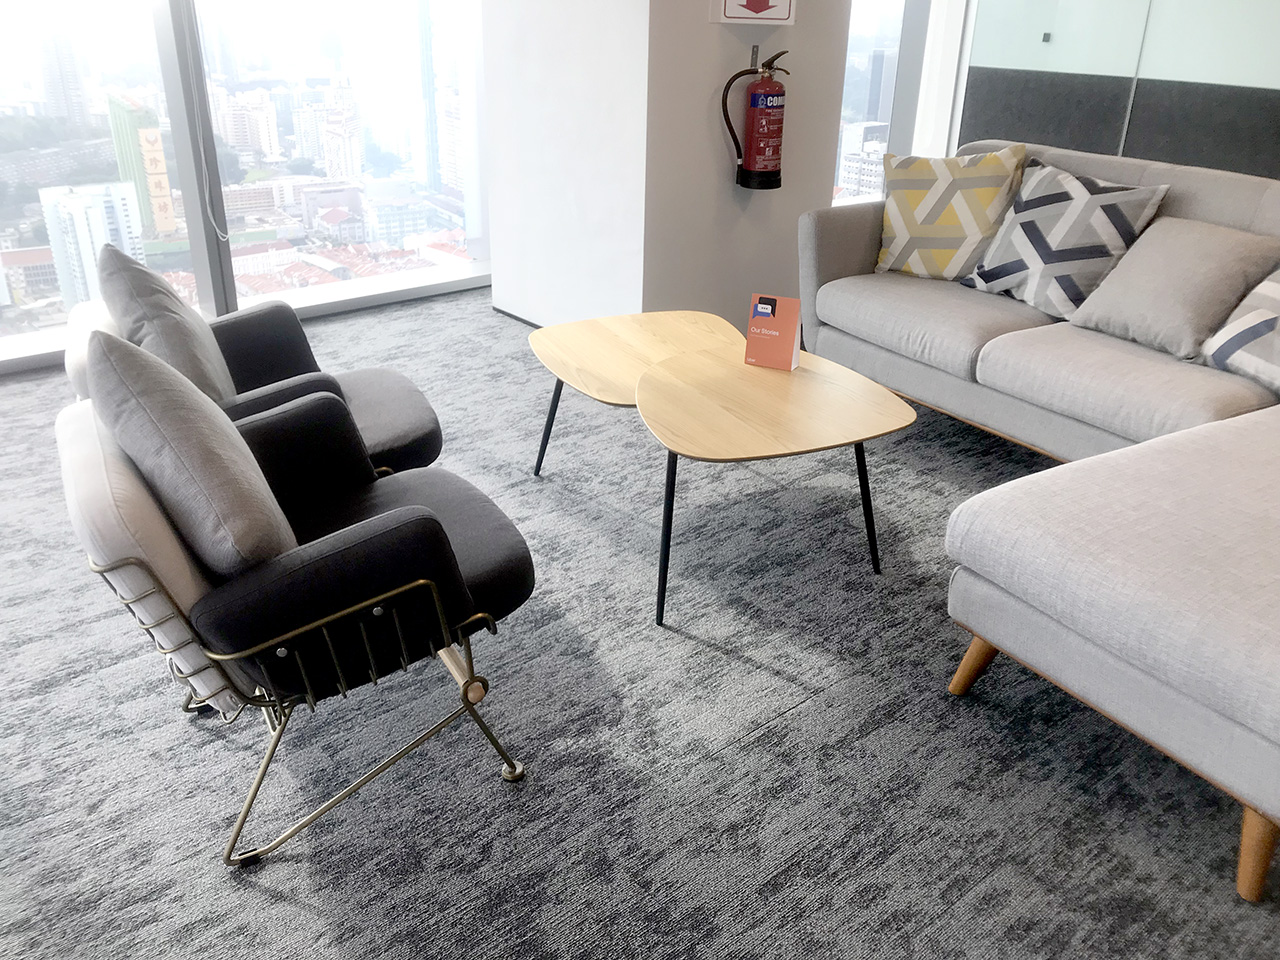 Uber - Frasers Towers | Product Seen: [Uta 1 Seater Lounger & Ridge Coffee Table]